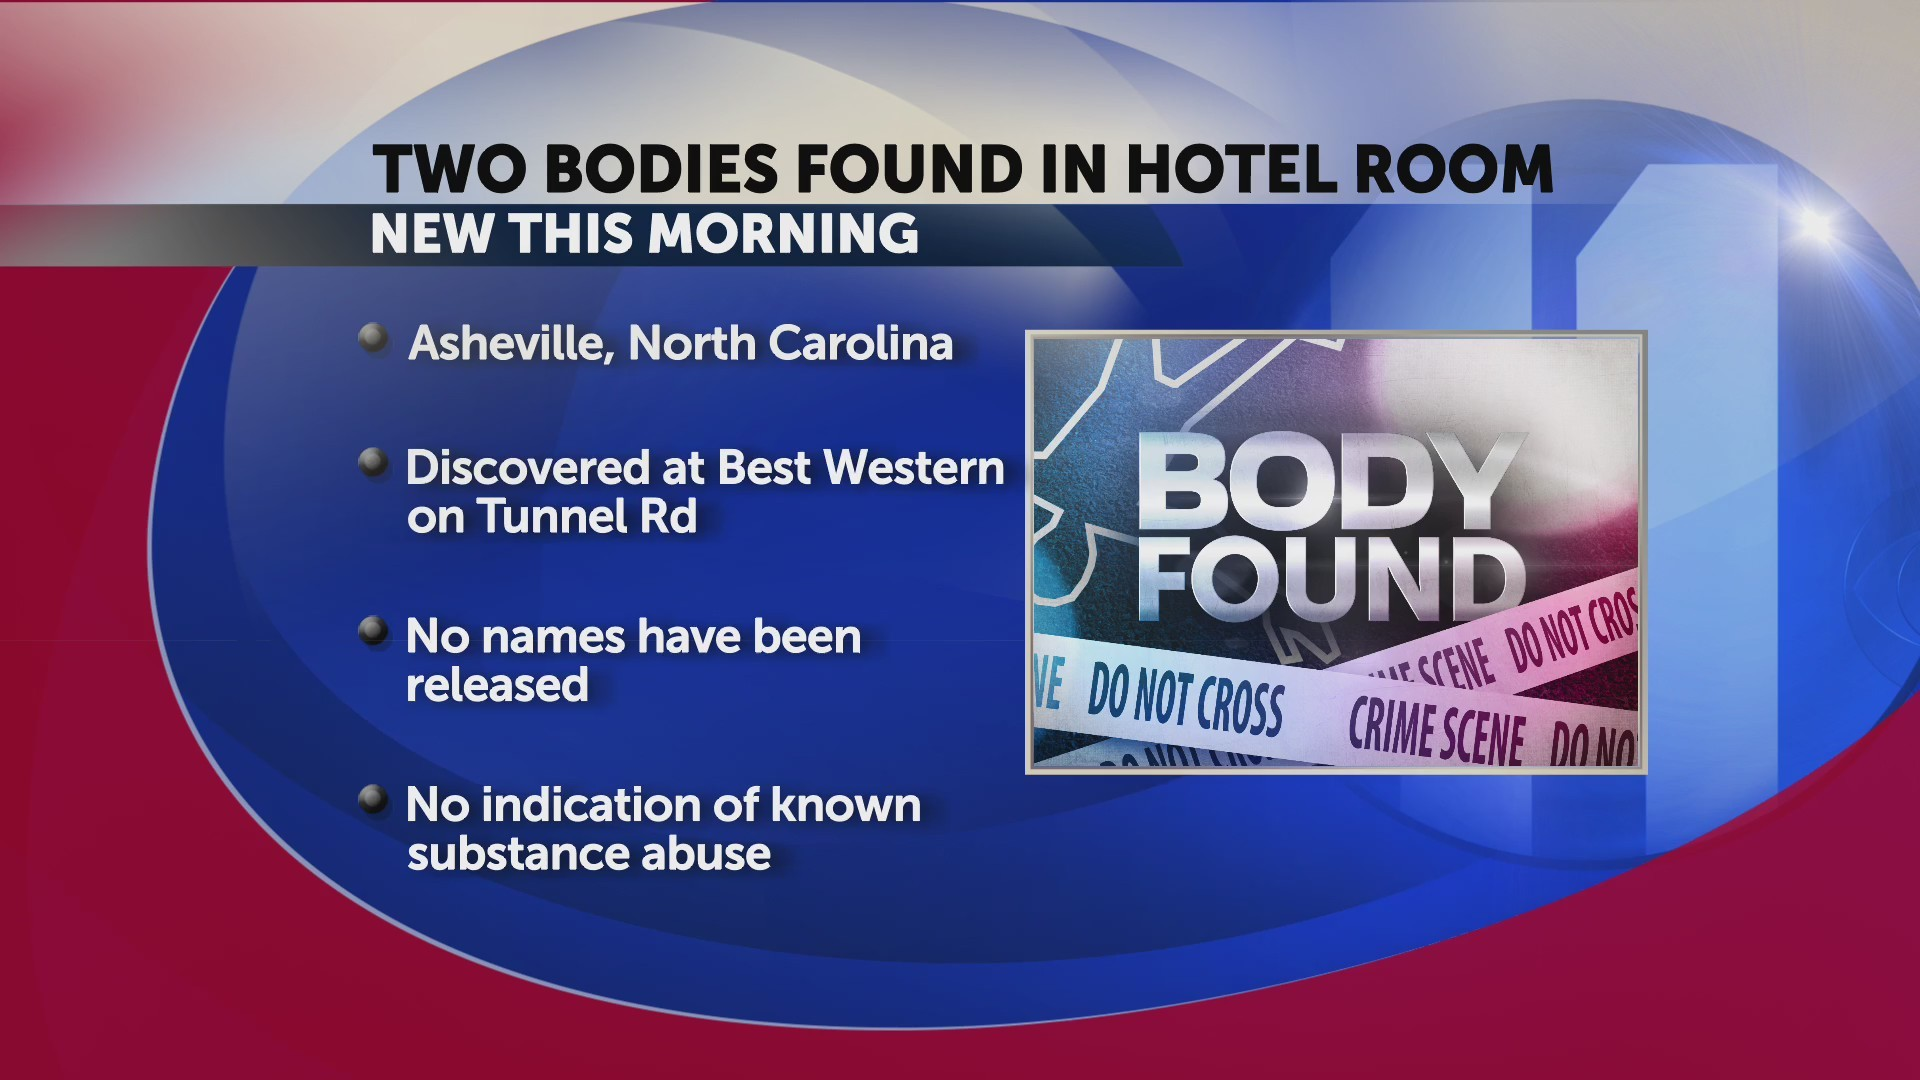 Unidentified bodies found in Asheville hotel